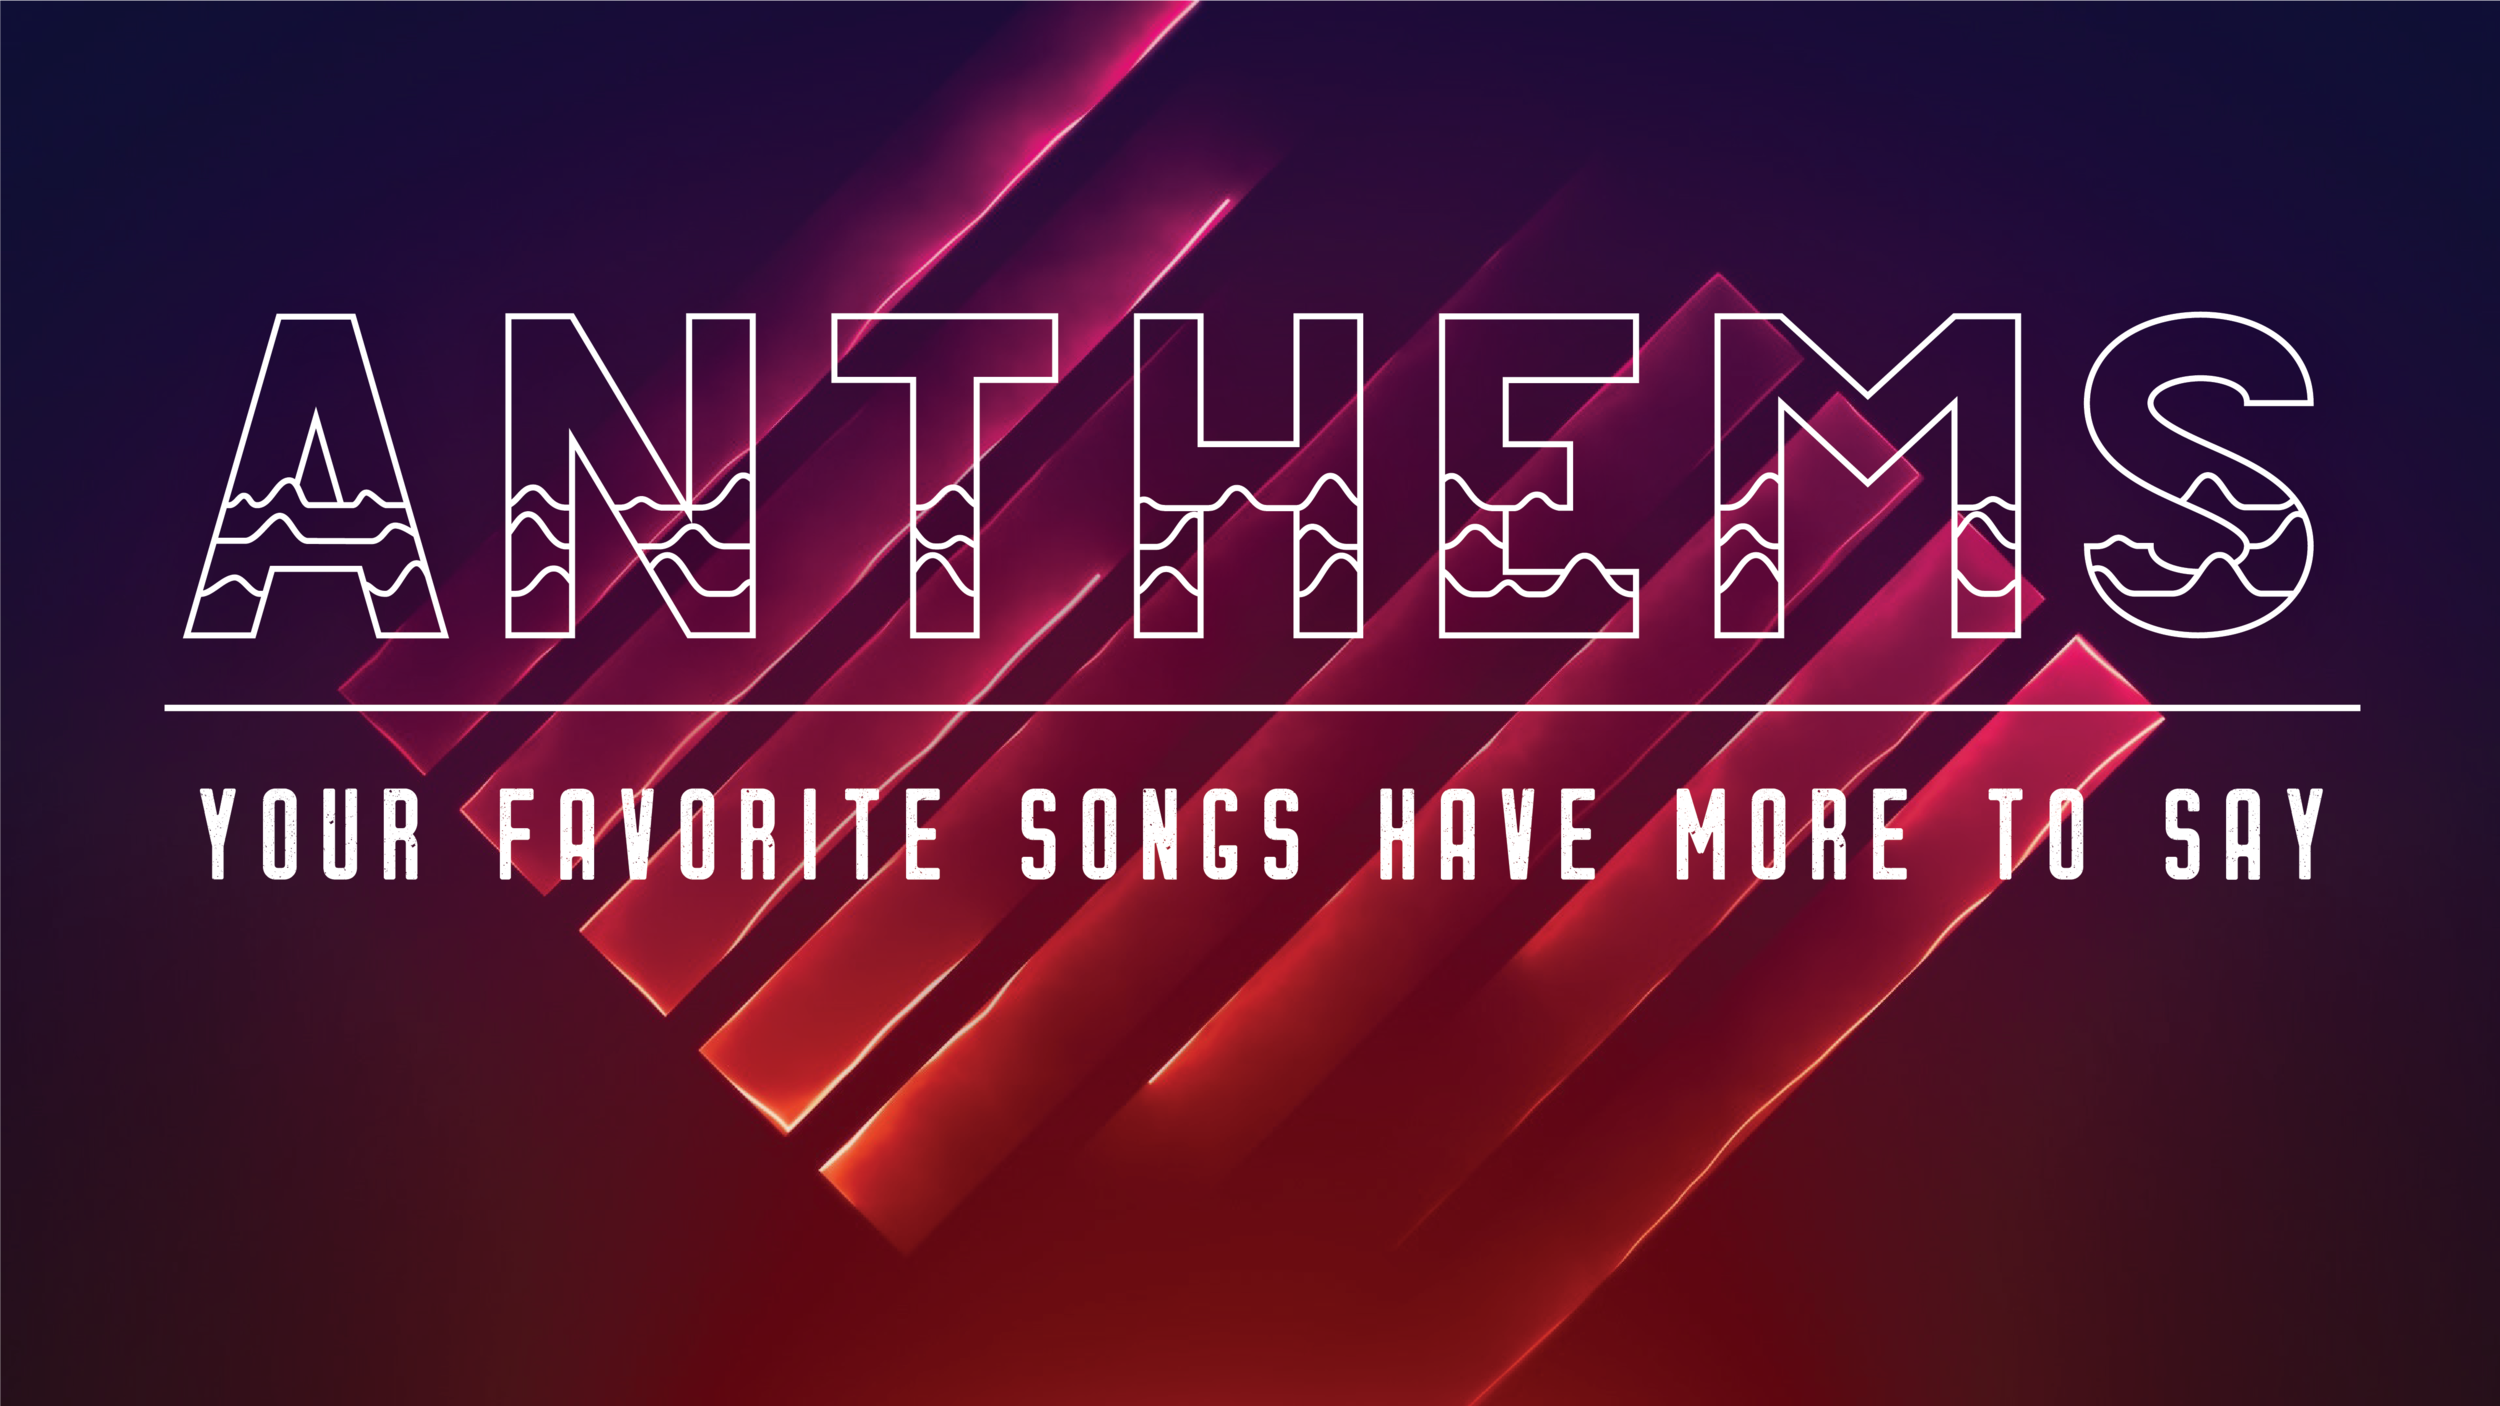 Anthems_Graphic - No Text.png